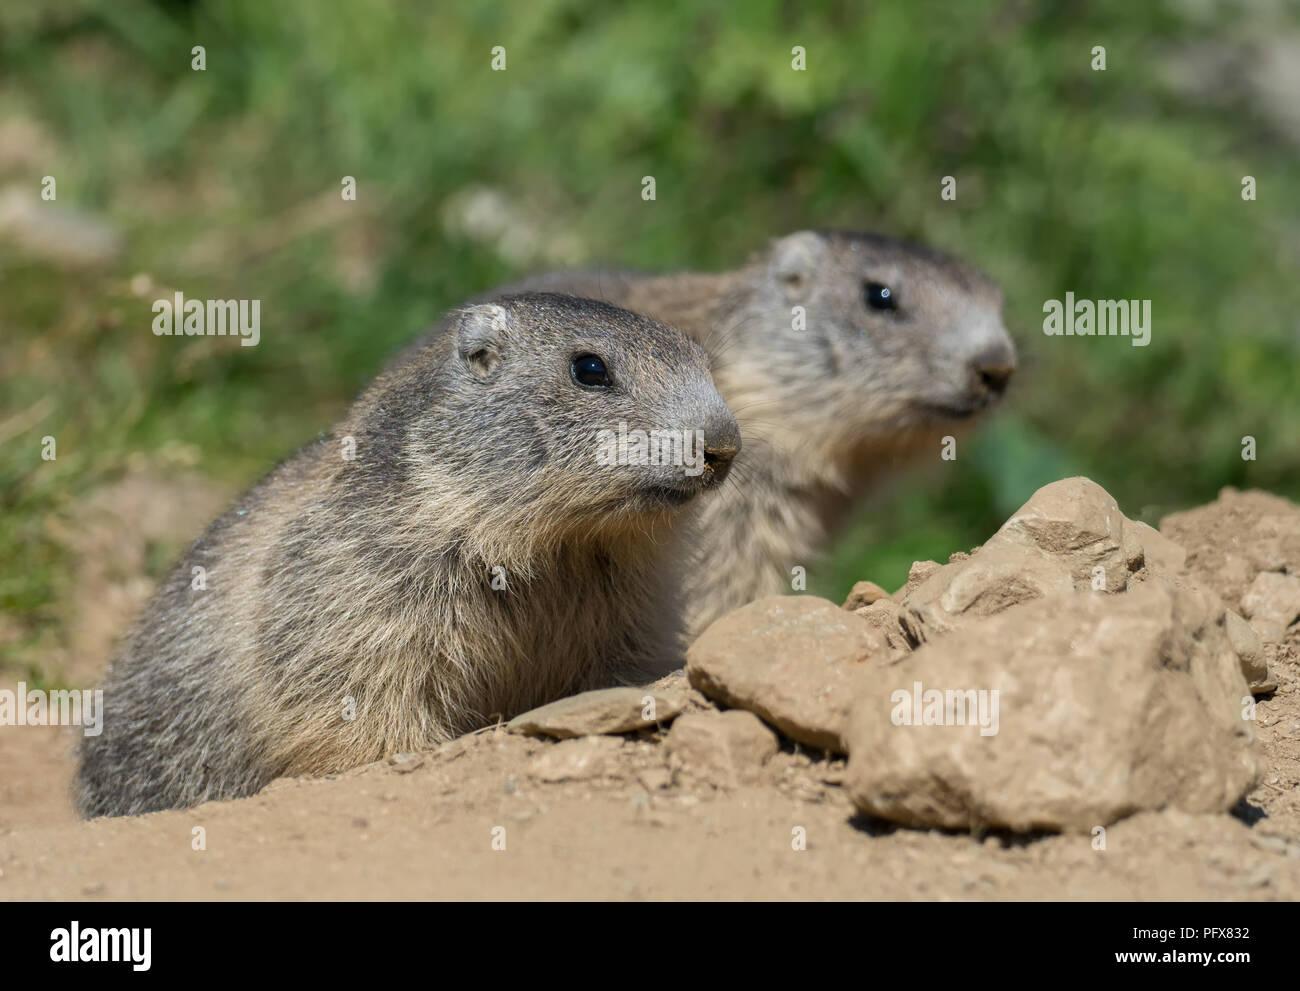 Baby Marmots - Stock Image